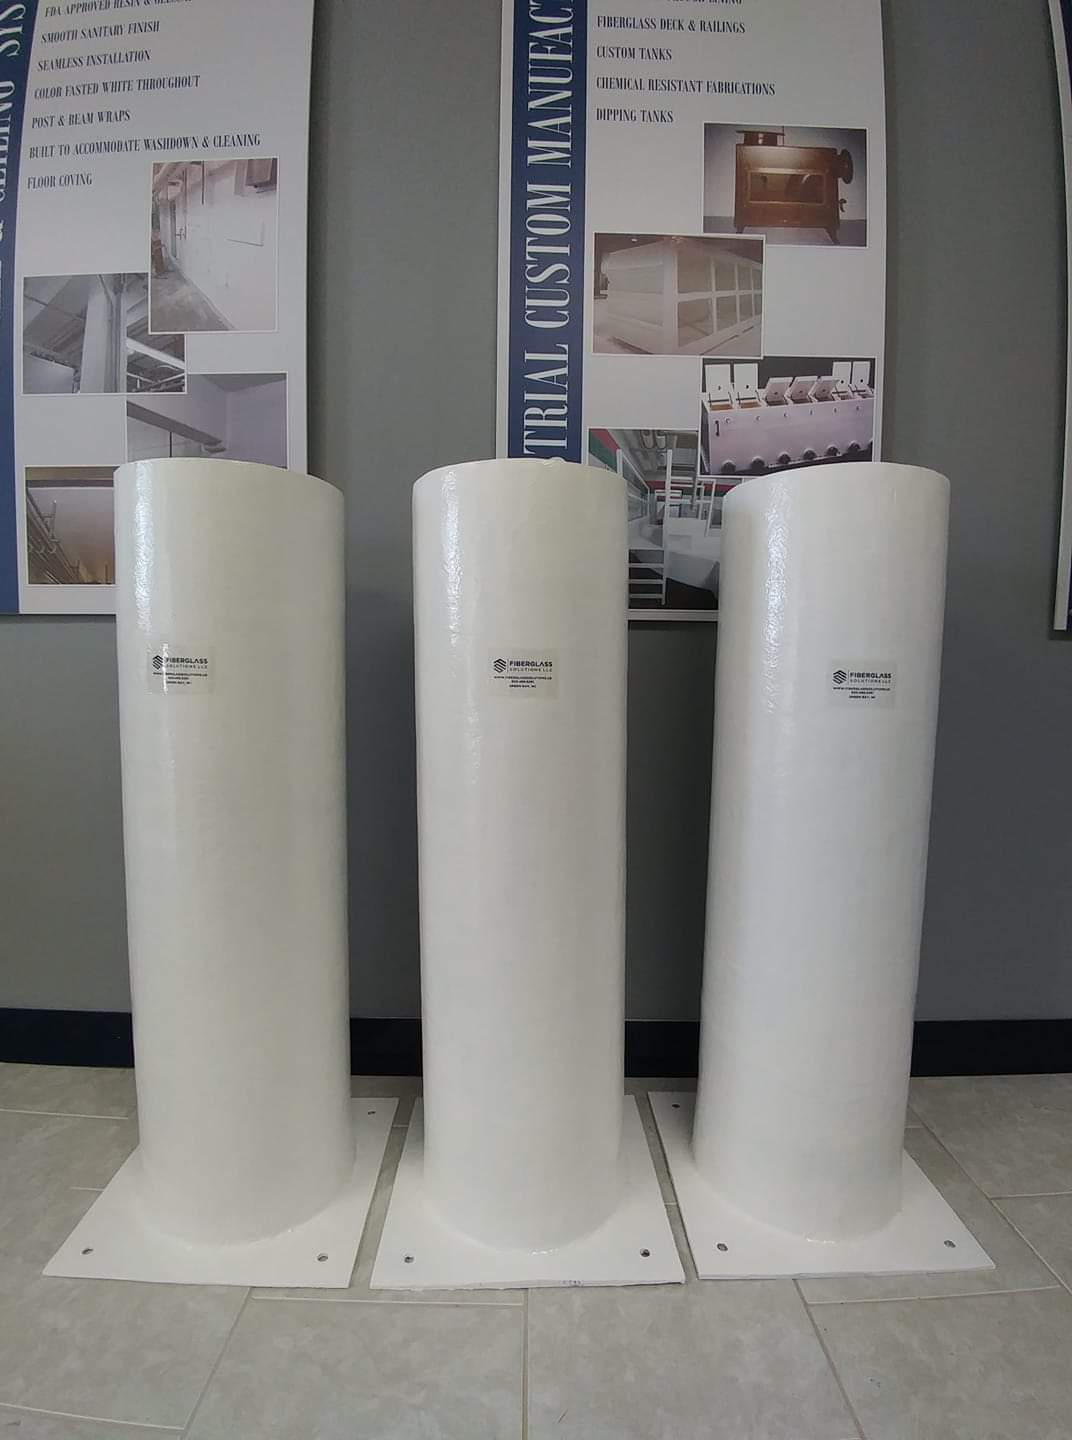 Custom Projects - We provide custom fiberglass solutions and are always looking for new opportunities to help your business grow.